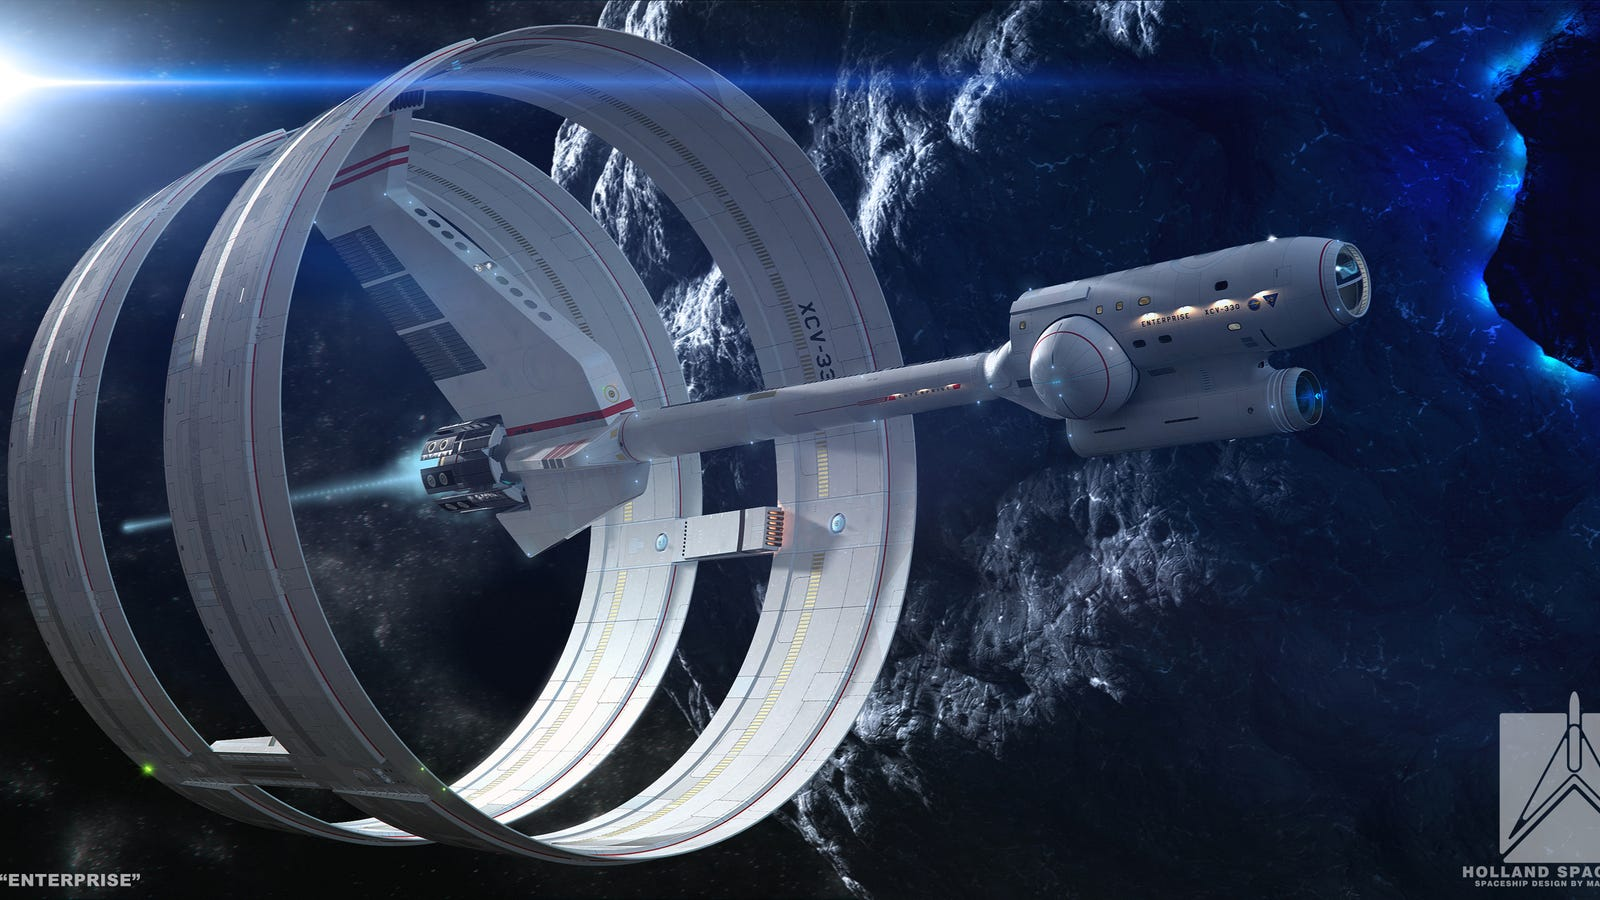 Faster than light travel News, Videos, Reviews and Gossip - Gizmodo